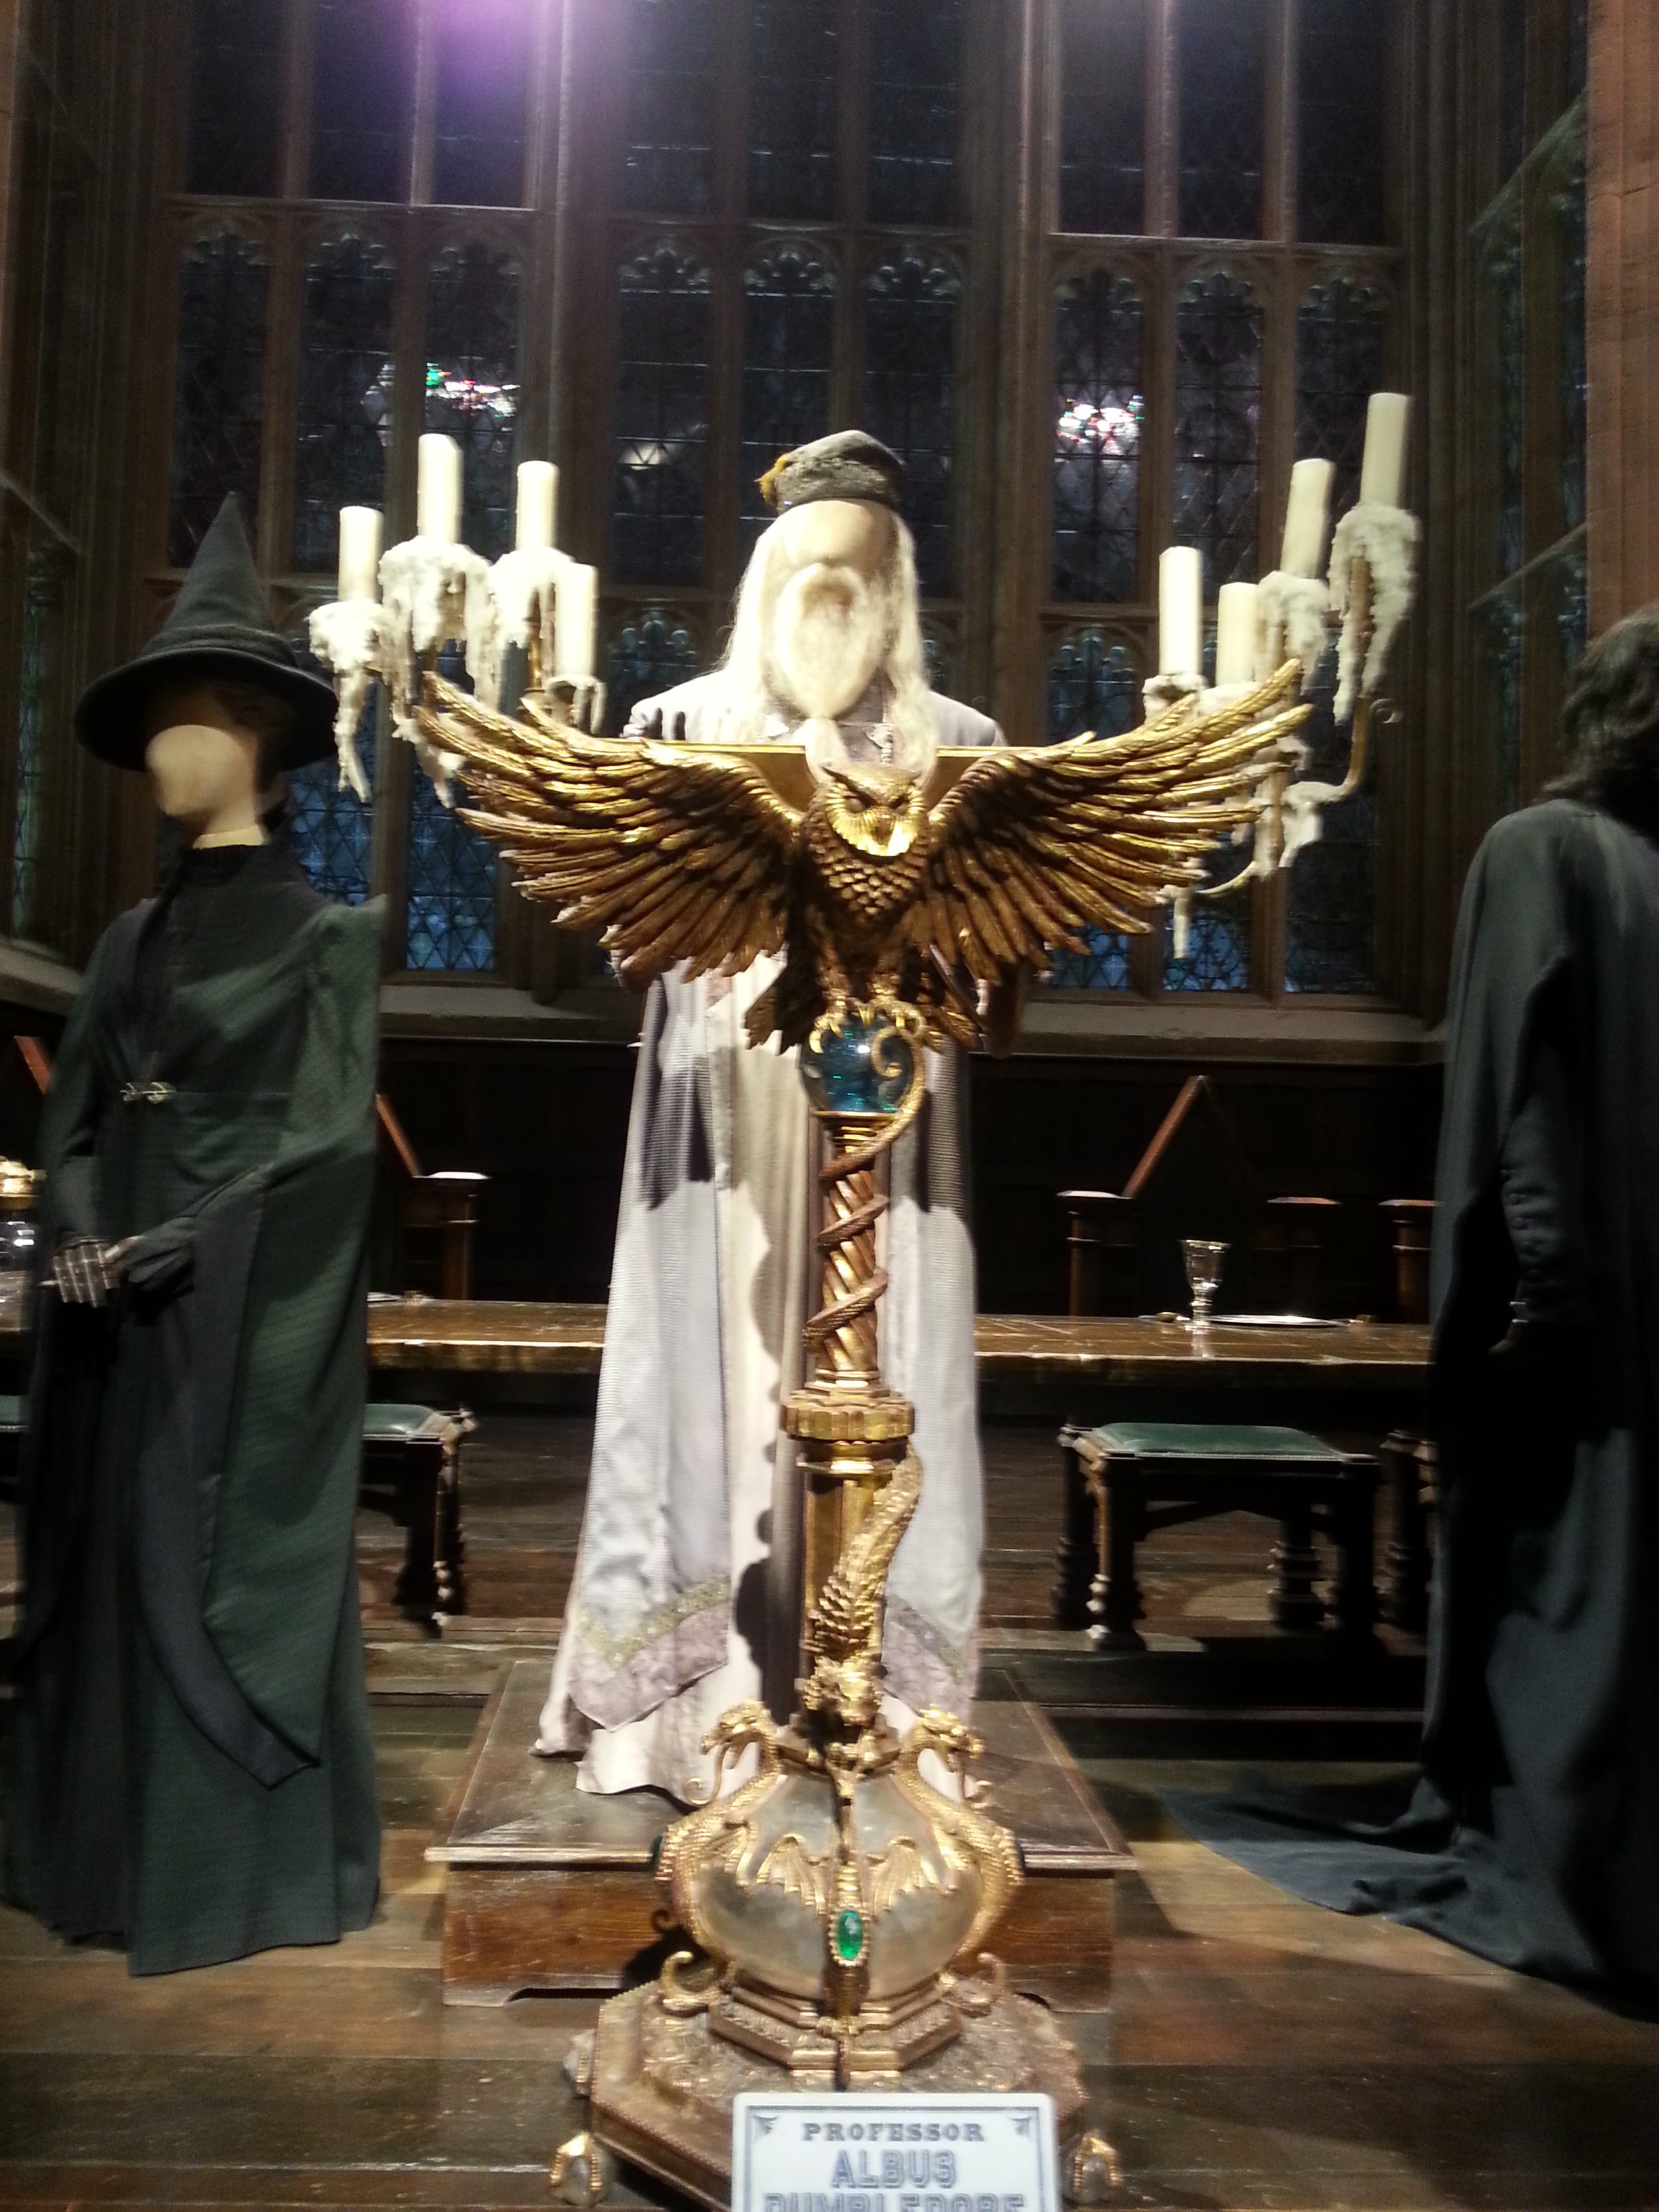 Dumbledore at the head of the Great Hall.